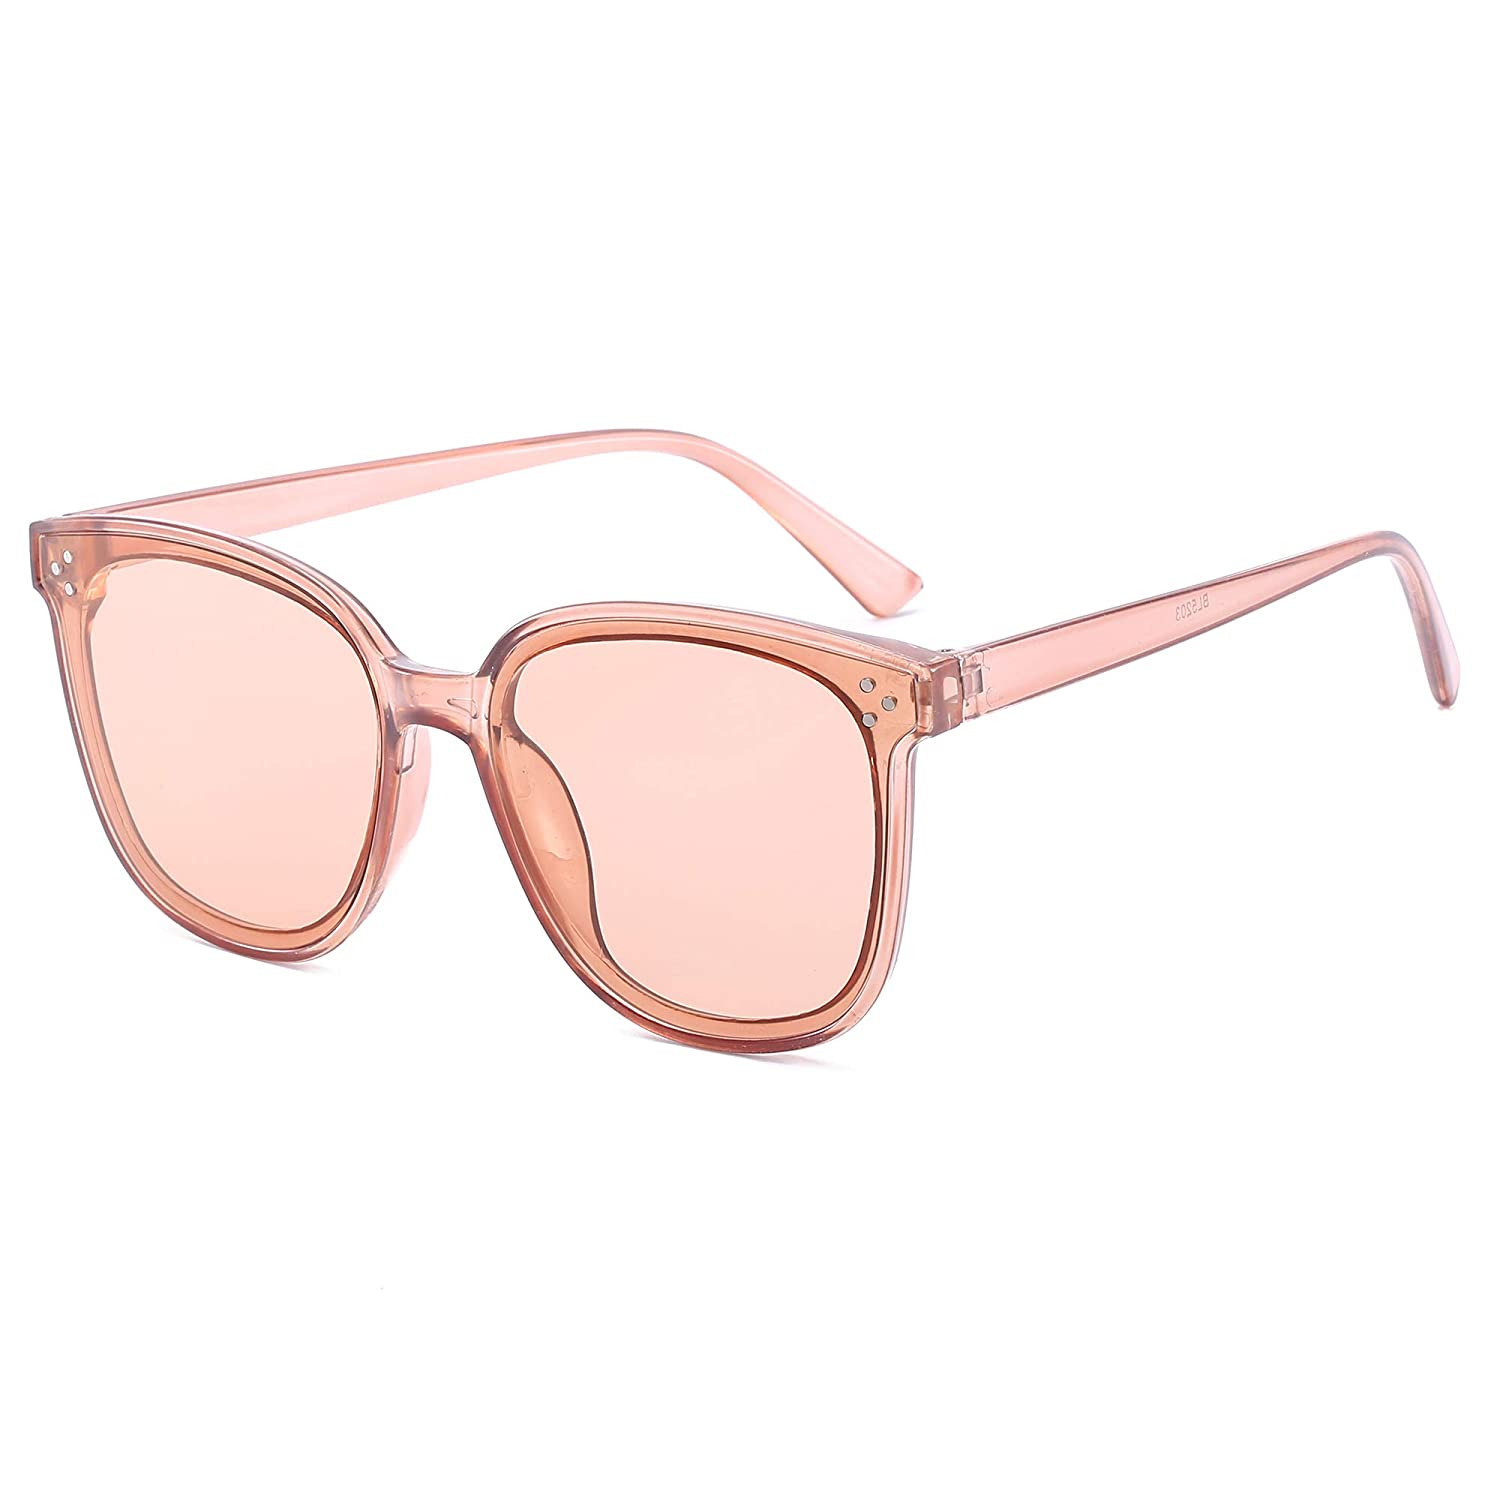 Armear Women Men Fashion Circle Frame Horn Rimmed Retro Round Sunglasses 60mm